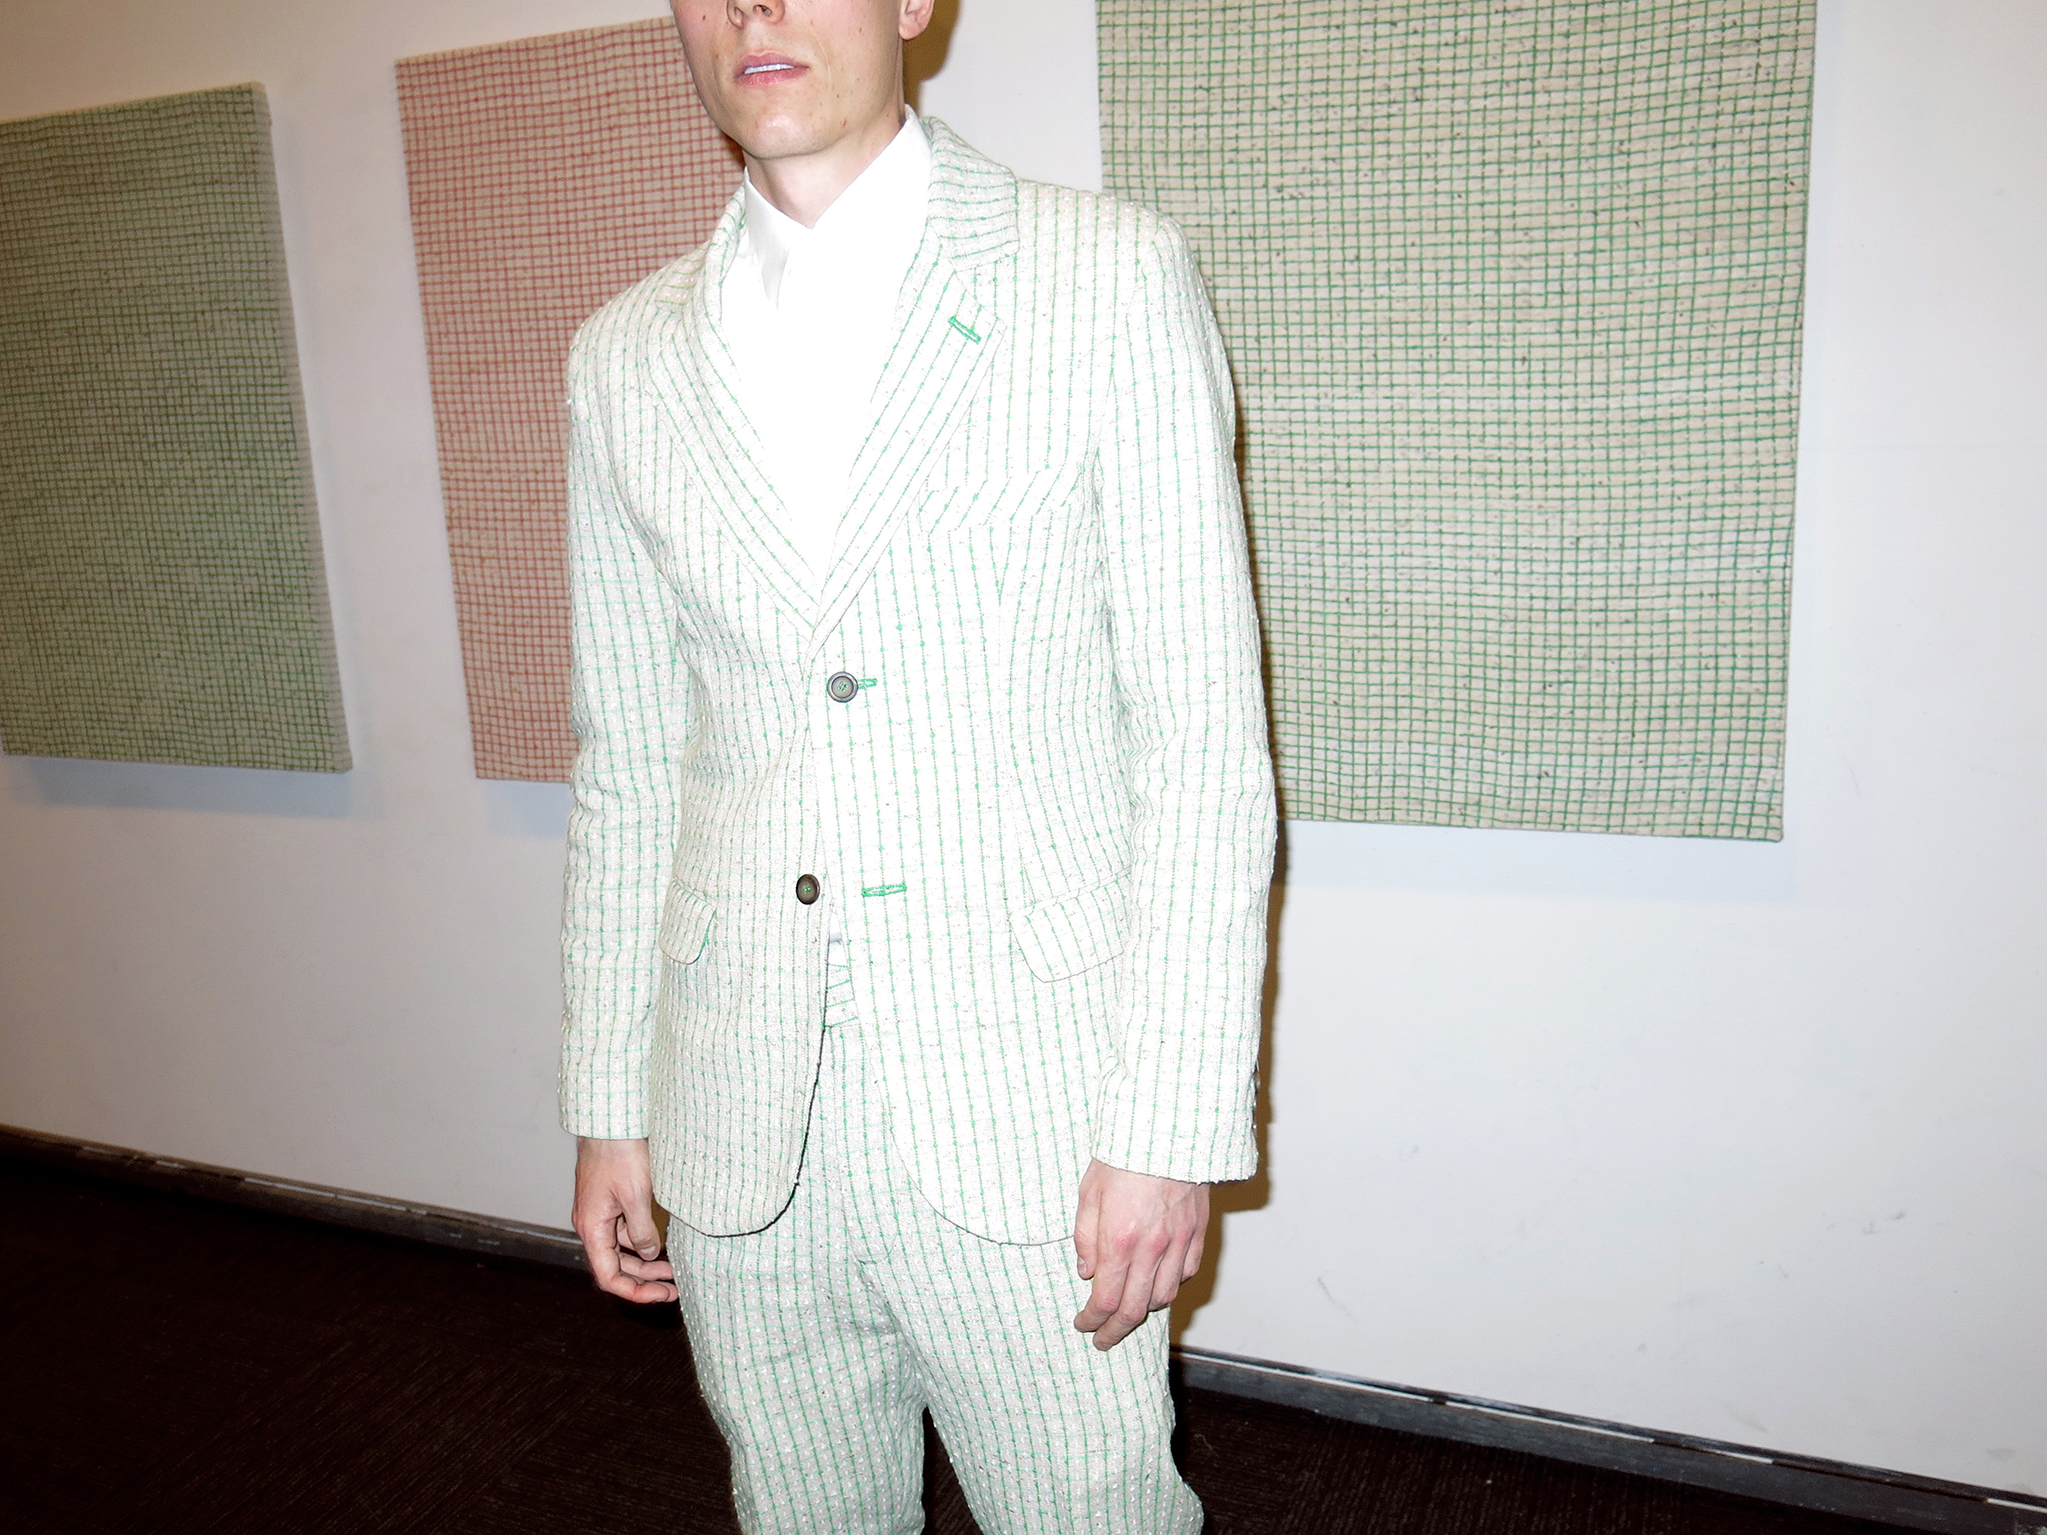 The artist in 2013 wearing a suit tailored to match his paintings.